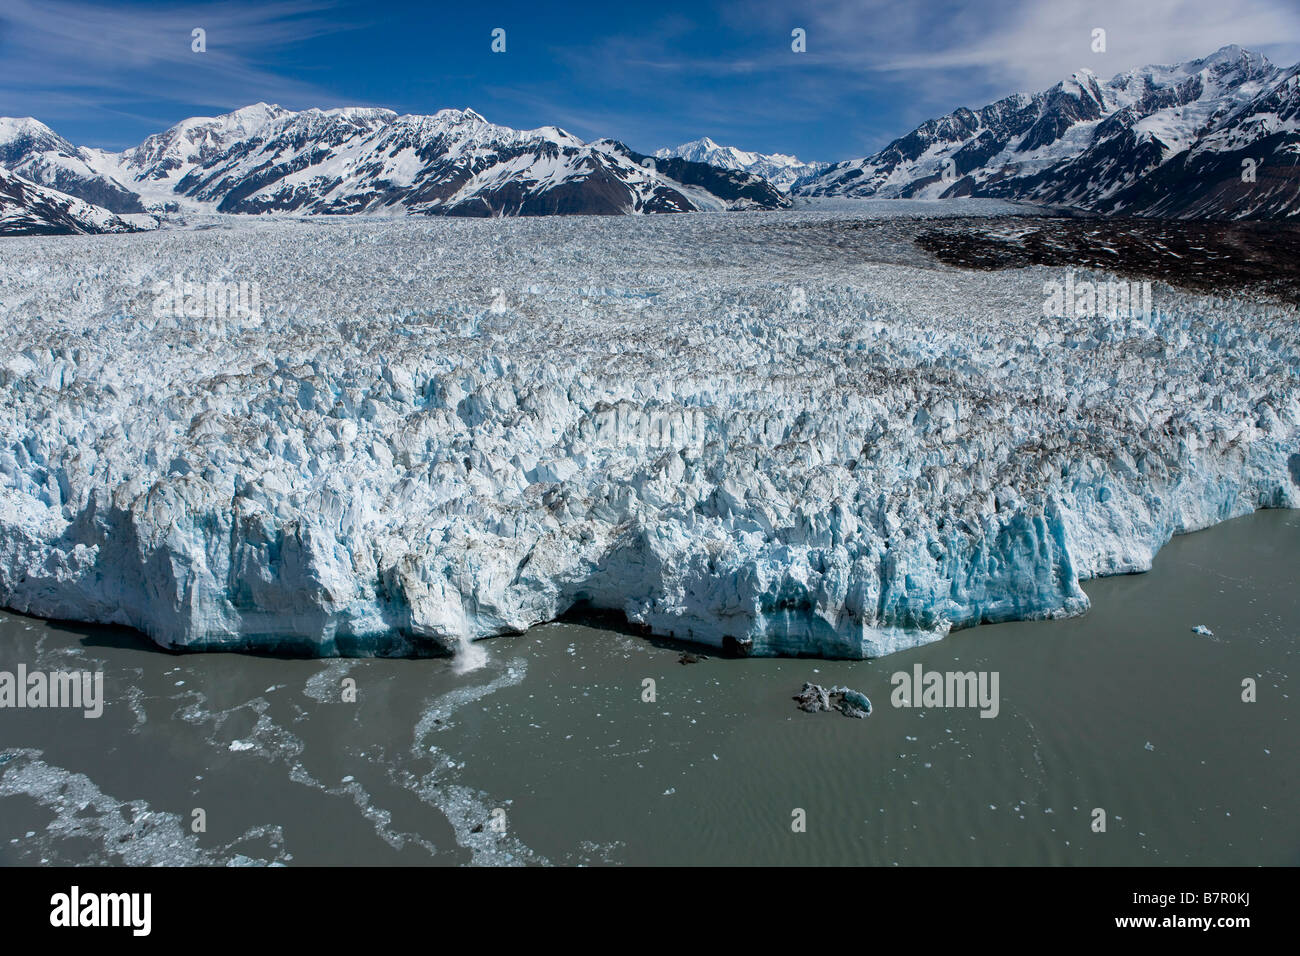 Aerial view of Hubbard Glacier with St. Elias mountain range in the background, Alaska - Stock Image